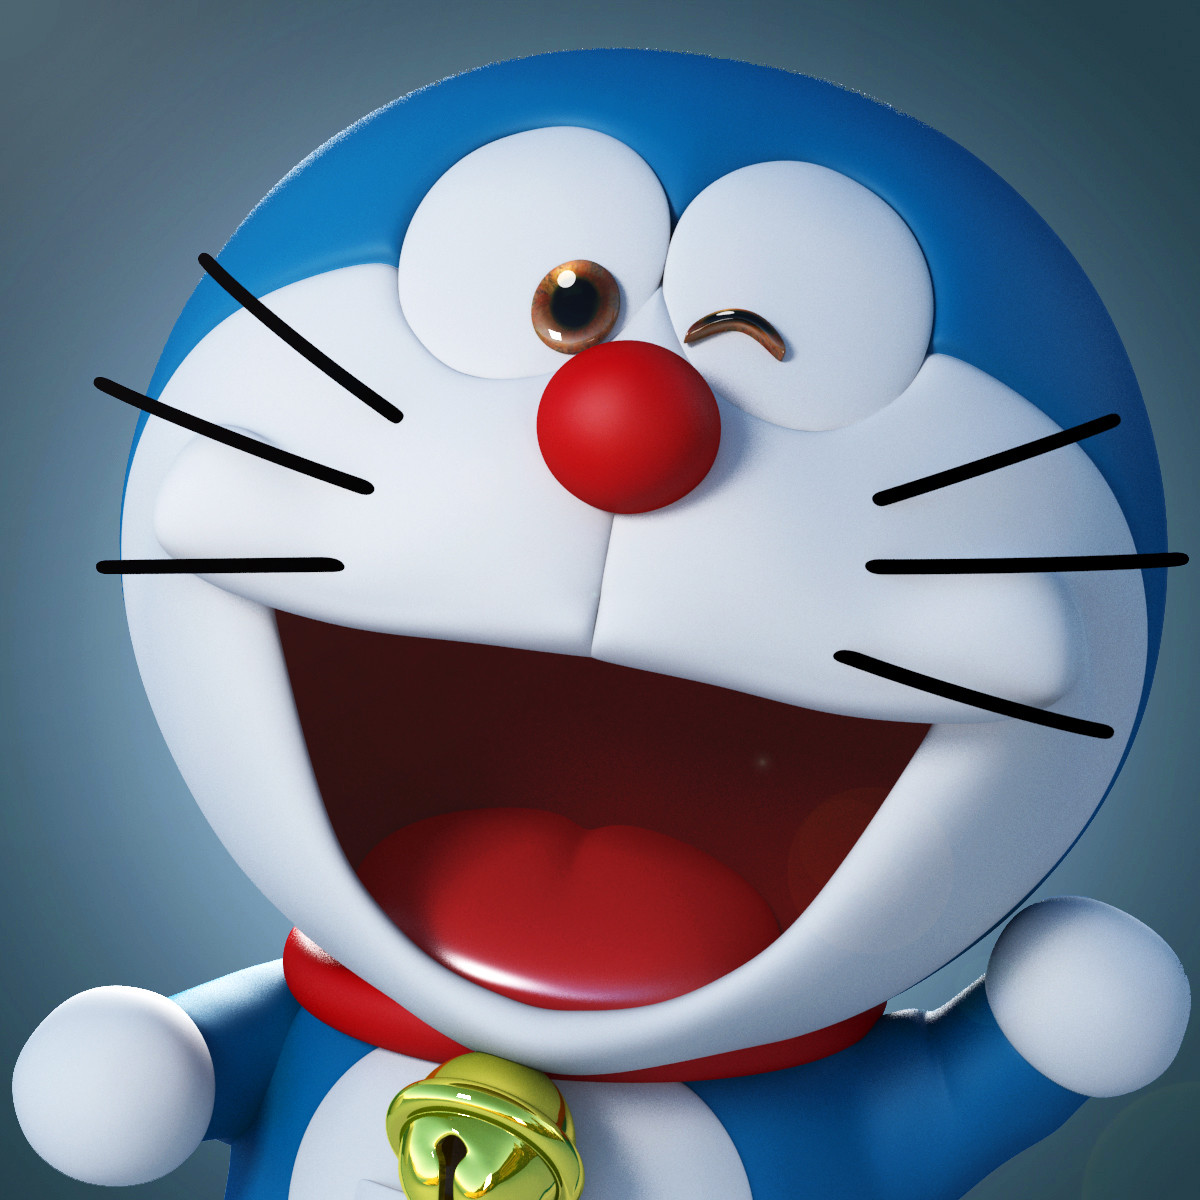 Wallpaper Doraemon 3d Untuk Hp  impremedianet